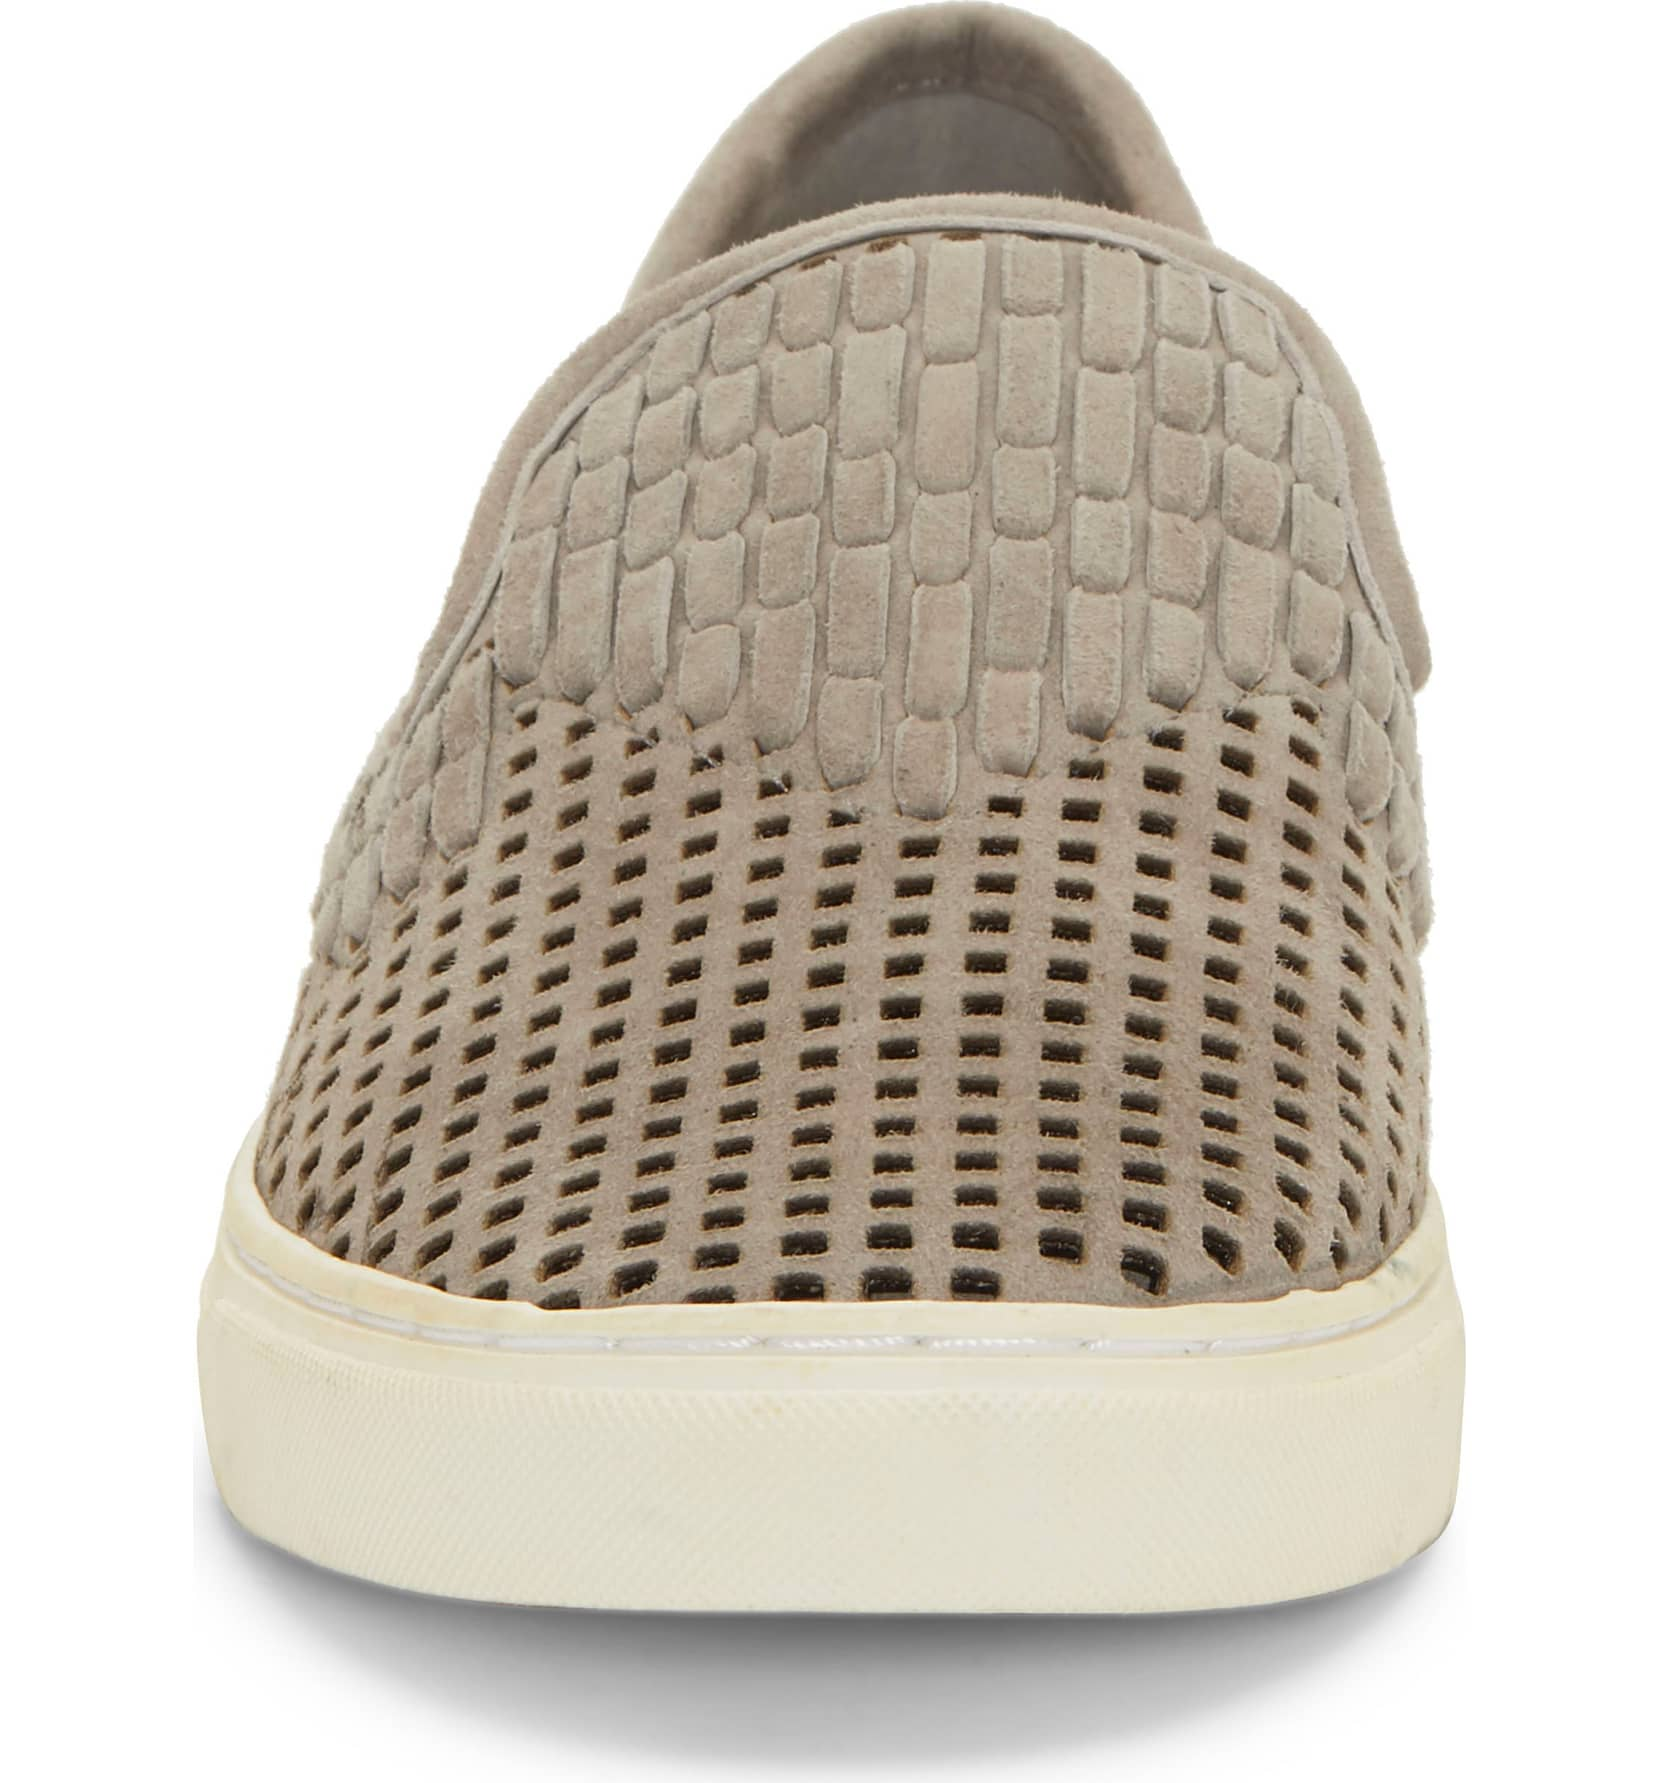 Vince-Camuto-Bristie-Storm-Grey-Leather-Woven-White-Sole-Slip-On-Sneakers thumbnail 49